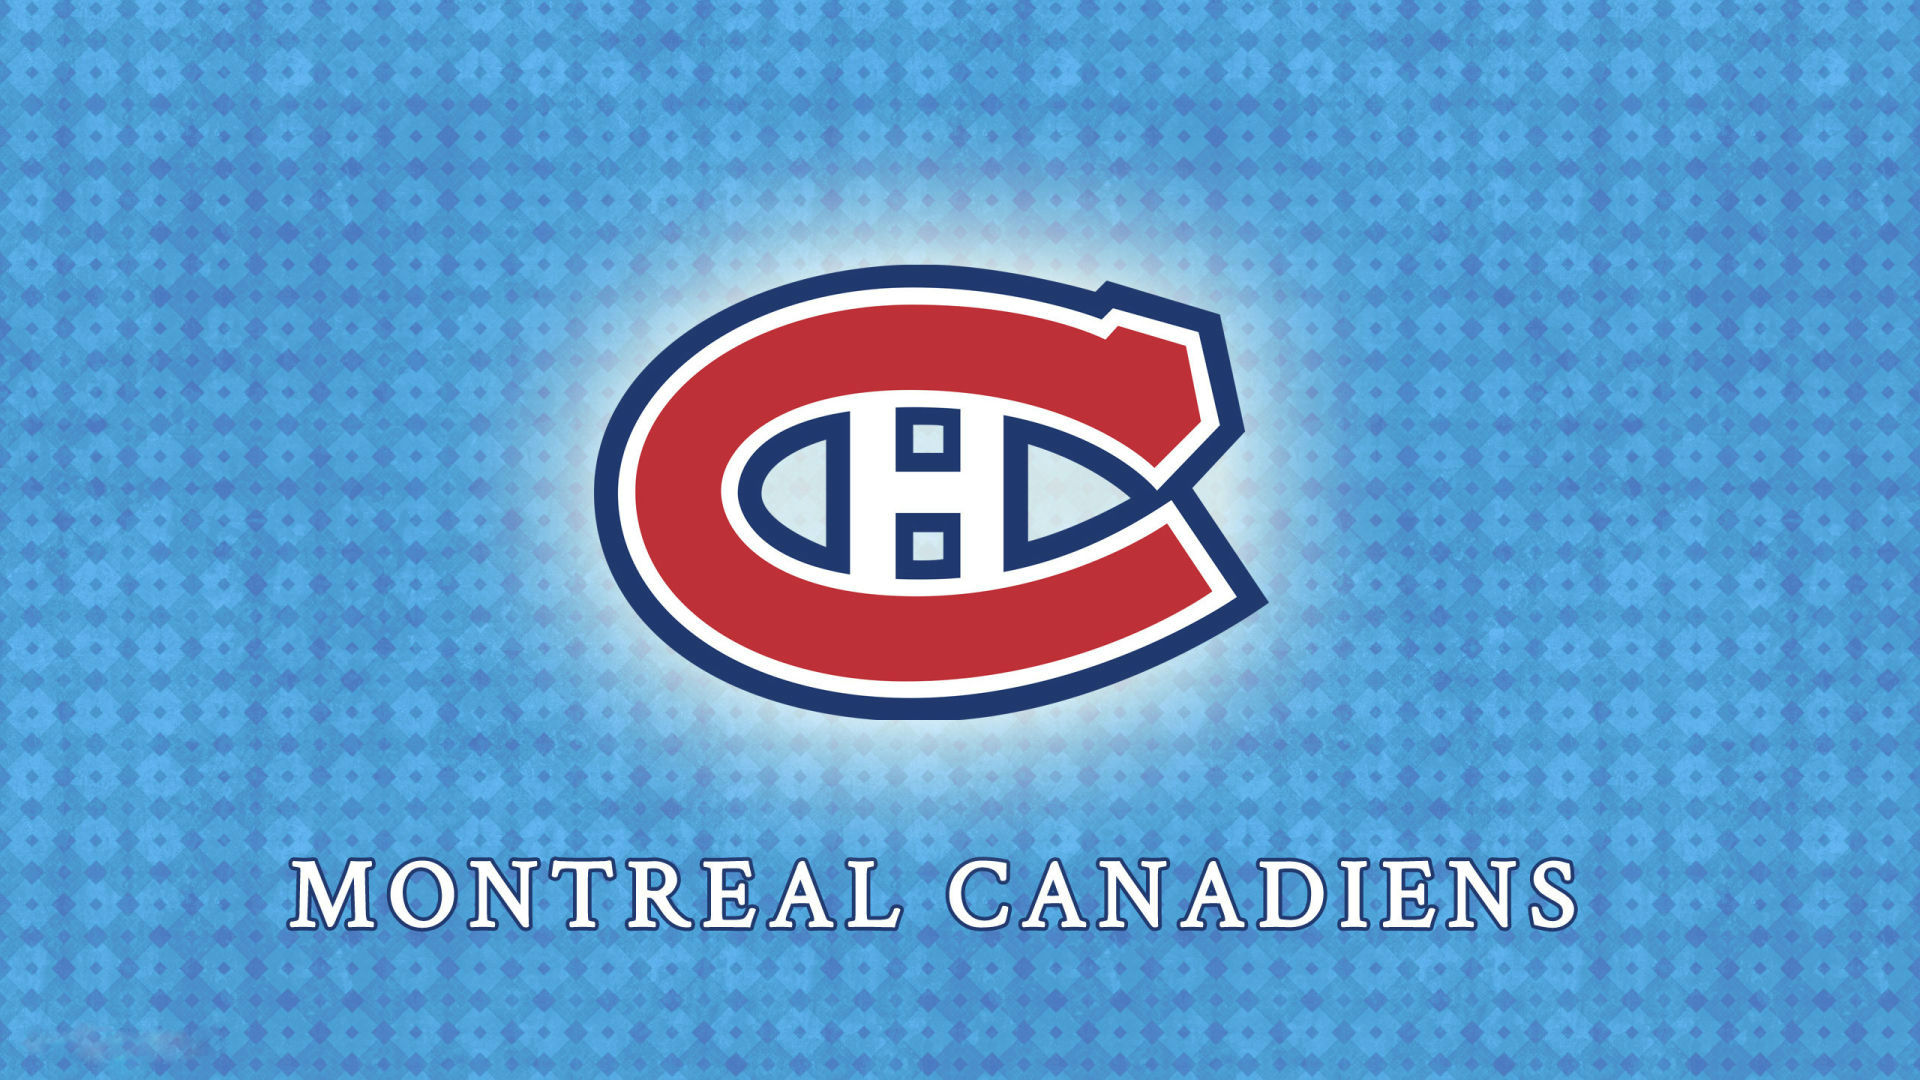 Montreal Canadiens Montreal Canadiens Wallpaper 40371154